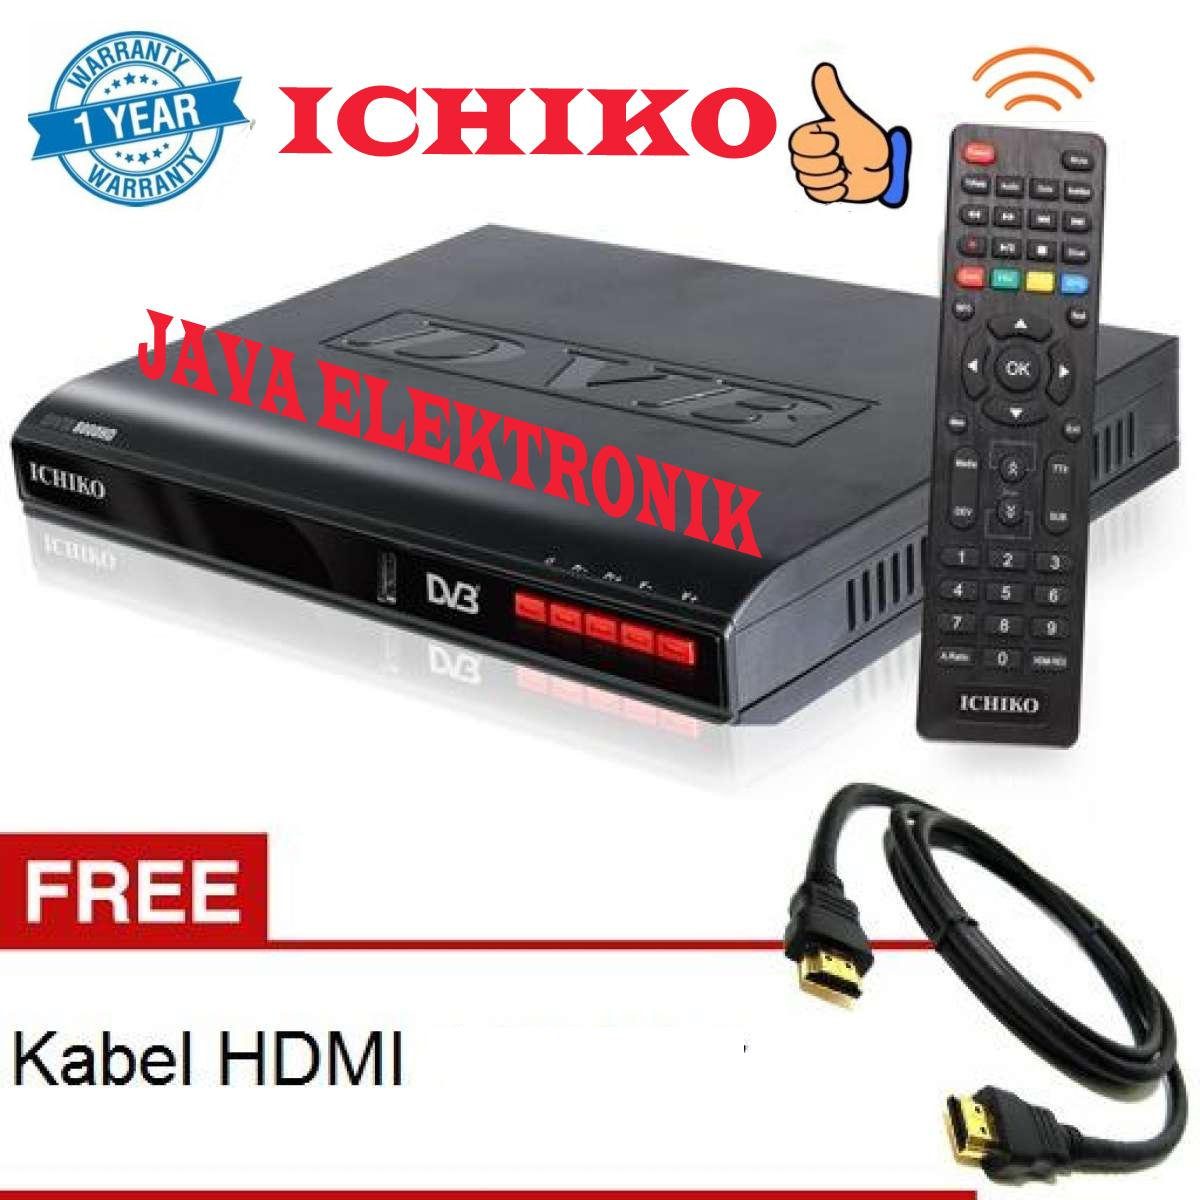 Ichiko DV 8000HD Set Top Box DVB T2 Tv Digital Receiver + Kabel HDMI & RCA garansi resmi